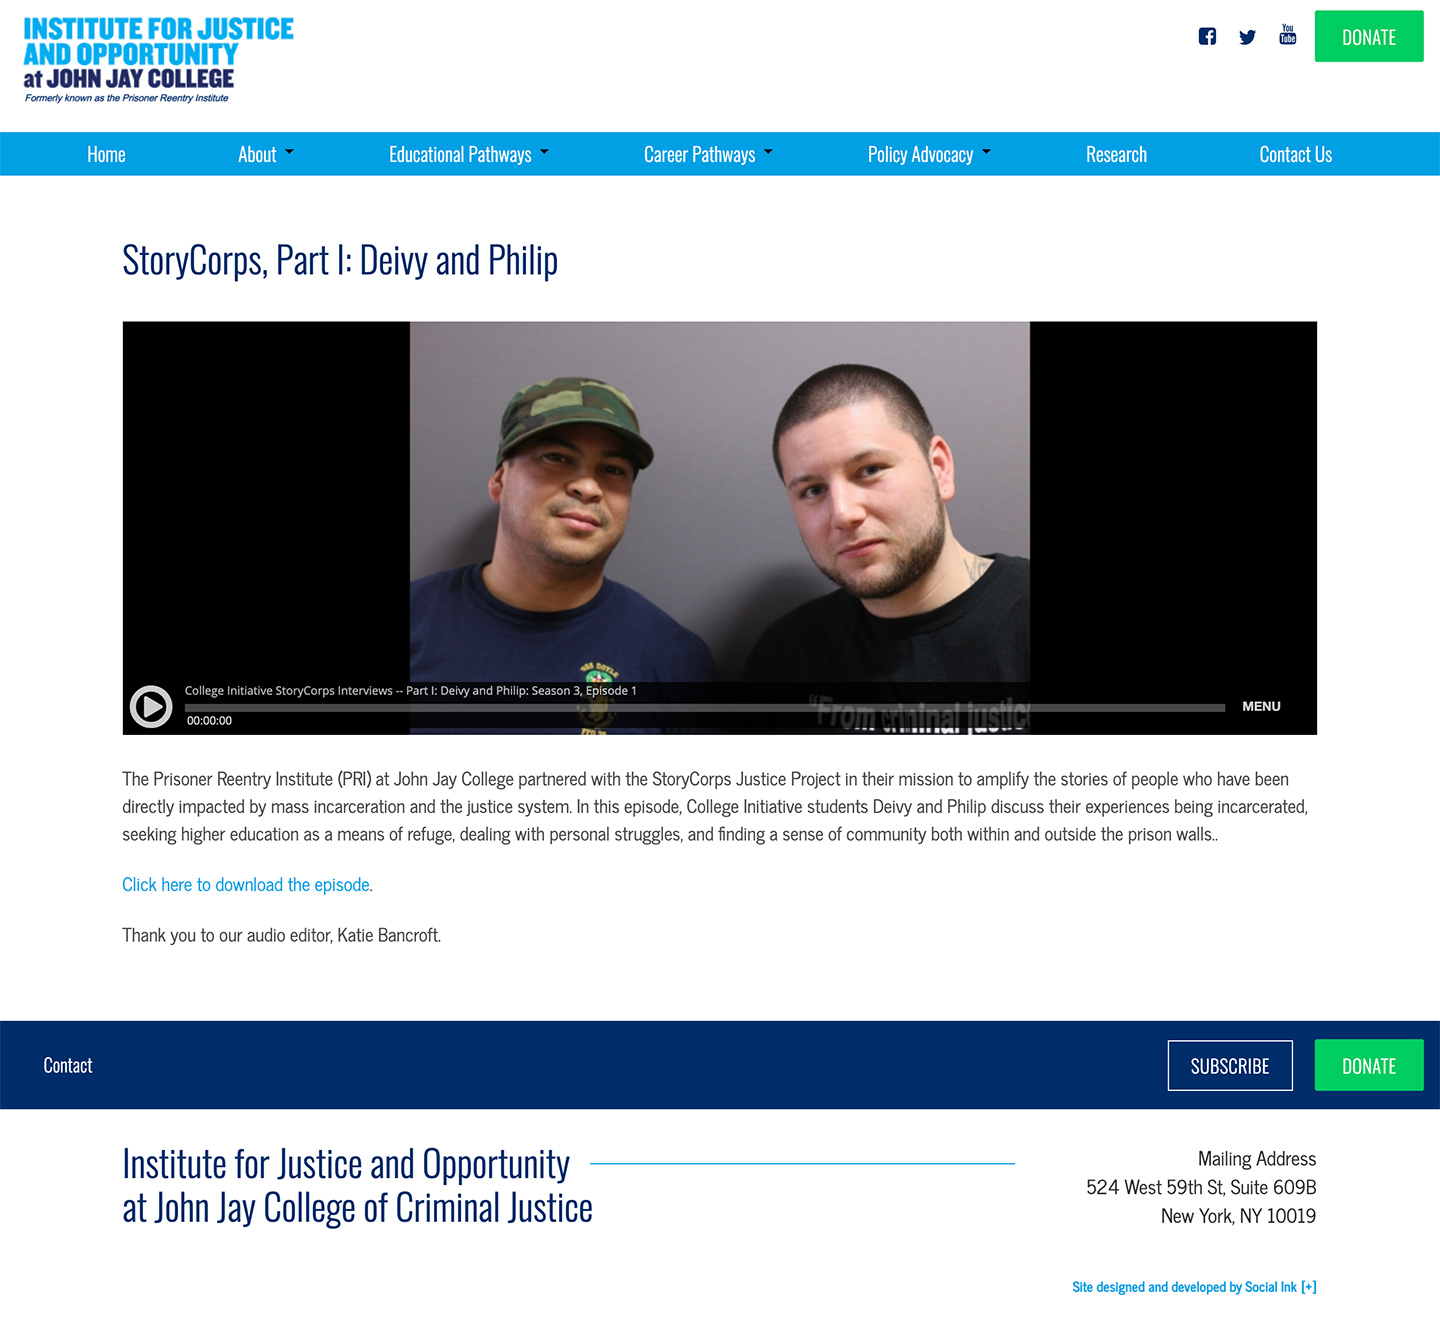 Institute for Justice and Opportunity (CUNY John Jay): John Jay Institute for Justice and Opportunity: Podcast and Storycorps